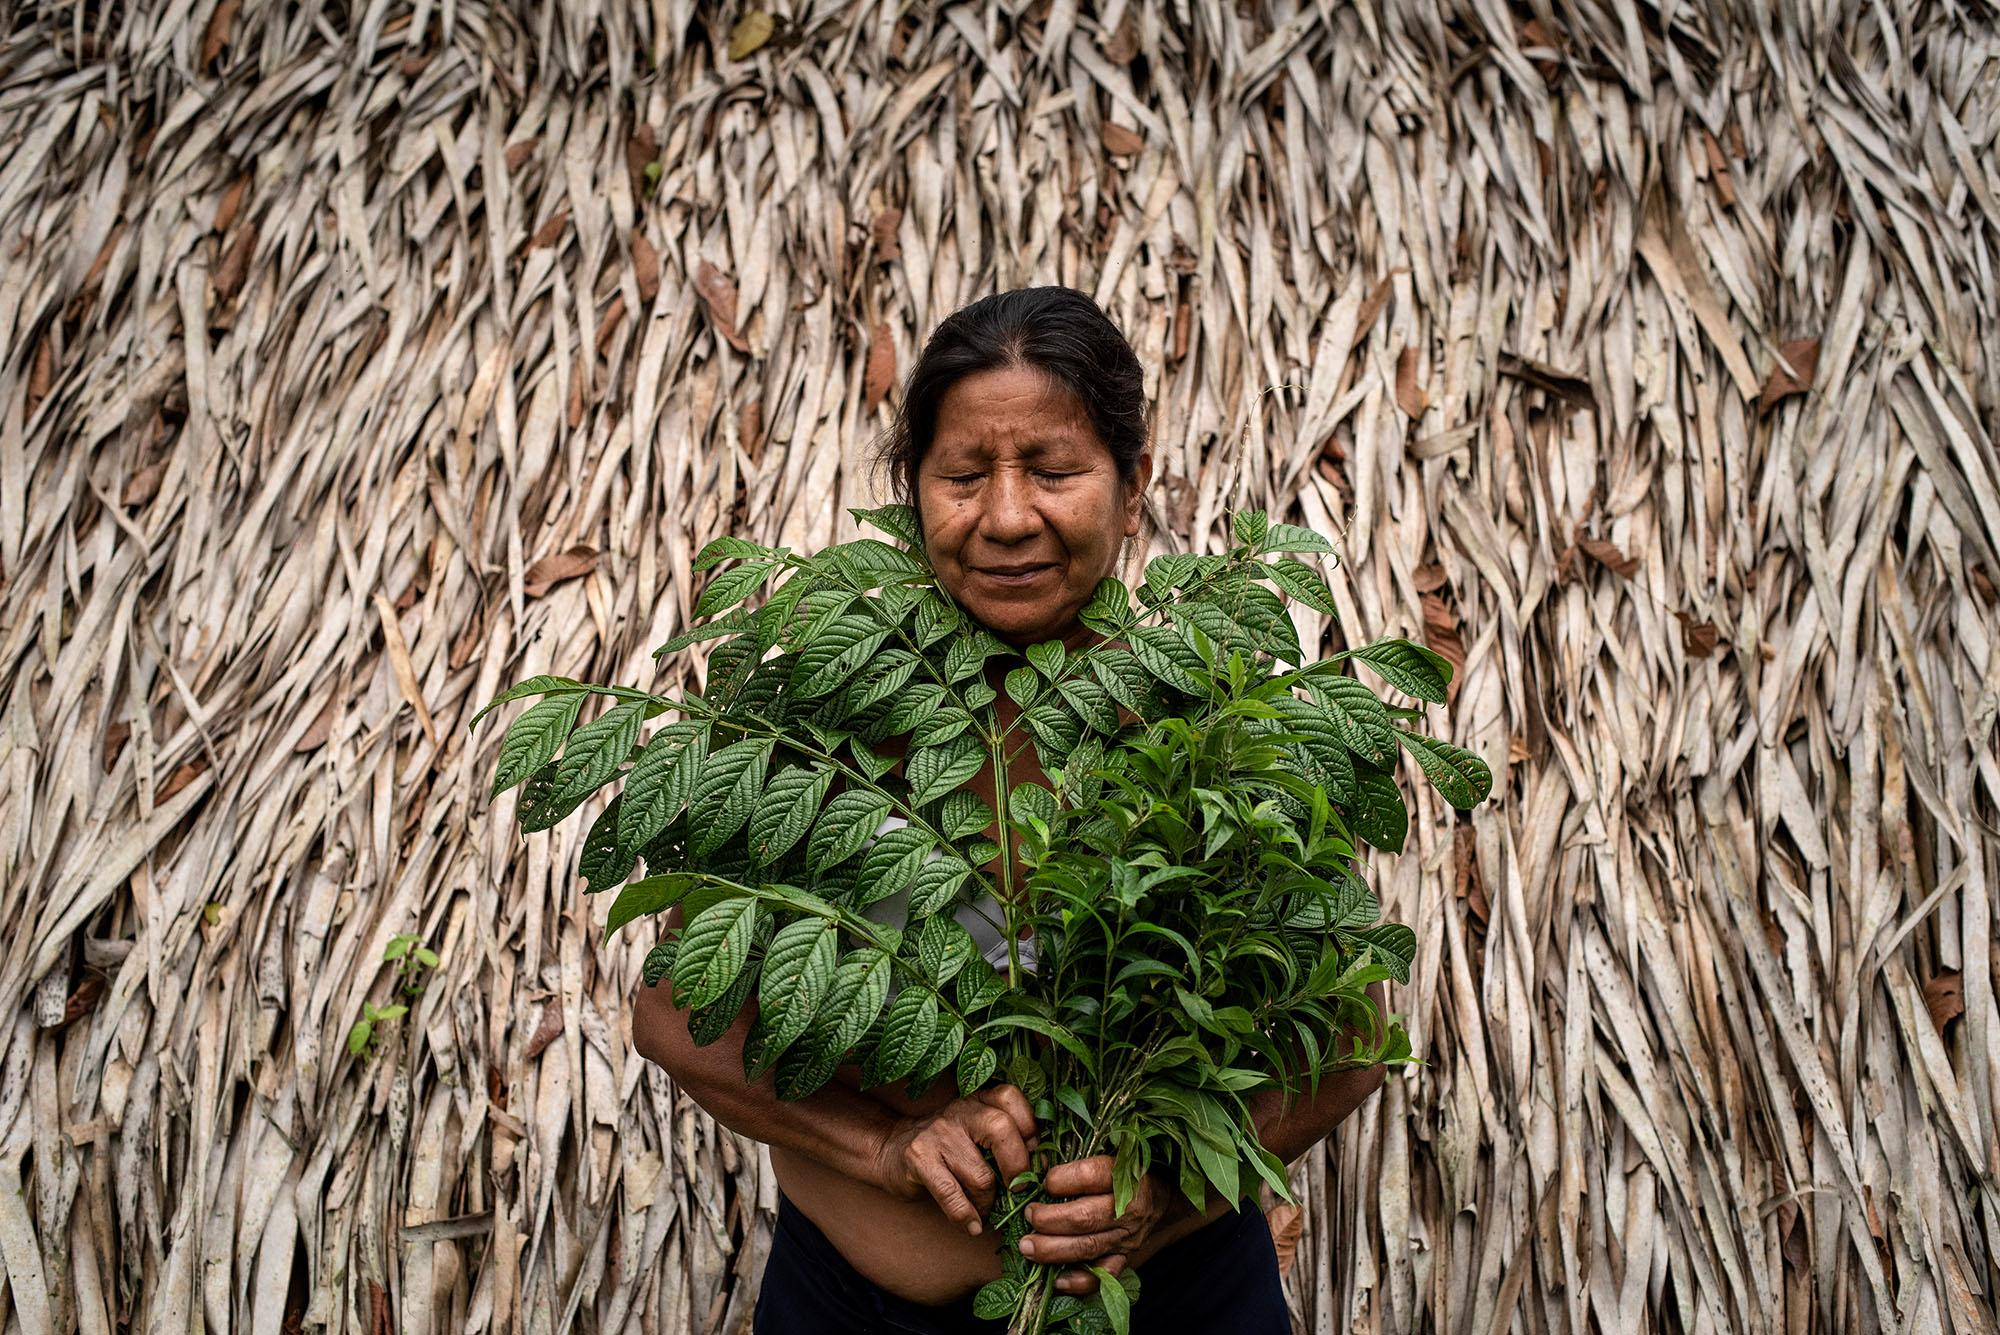 Cecilia Aguinda (62), a kichwa indigenous woman of the Toyuca community, poses for a portrait with the medicinal plants that she used as a natural to heal the wounds on your hands and feet caused by contact with oil. She was fishing in the early morning of April 7. The darkness did not allow her to see the oil in the water. Her fishing net got caught in the river, she and her son suffered several skin injuries while pulling the net out of the water. Cecilia healed her wounds with plants from her garden, she did not have specialized medical attention. Like her, more than 27 thousand affected indigenous people turned to her knowledge to heal their wounds. April 27,2021. Toyuca, Ecuador. Johis Alarcón